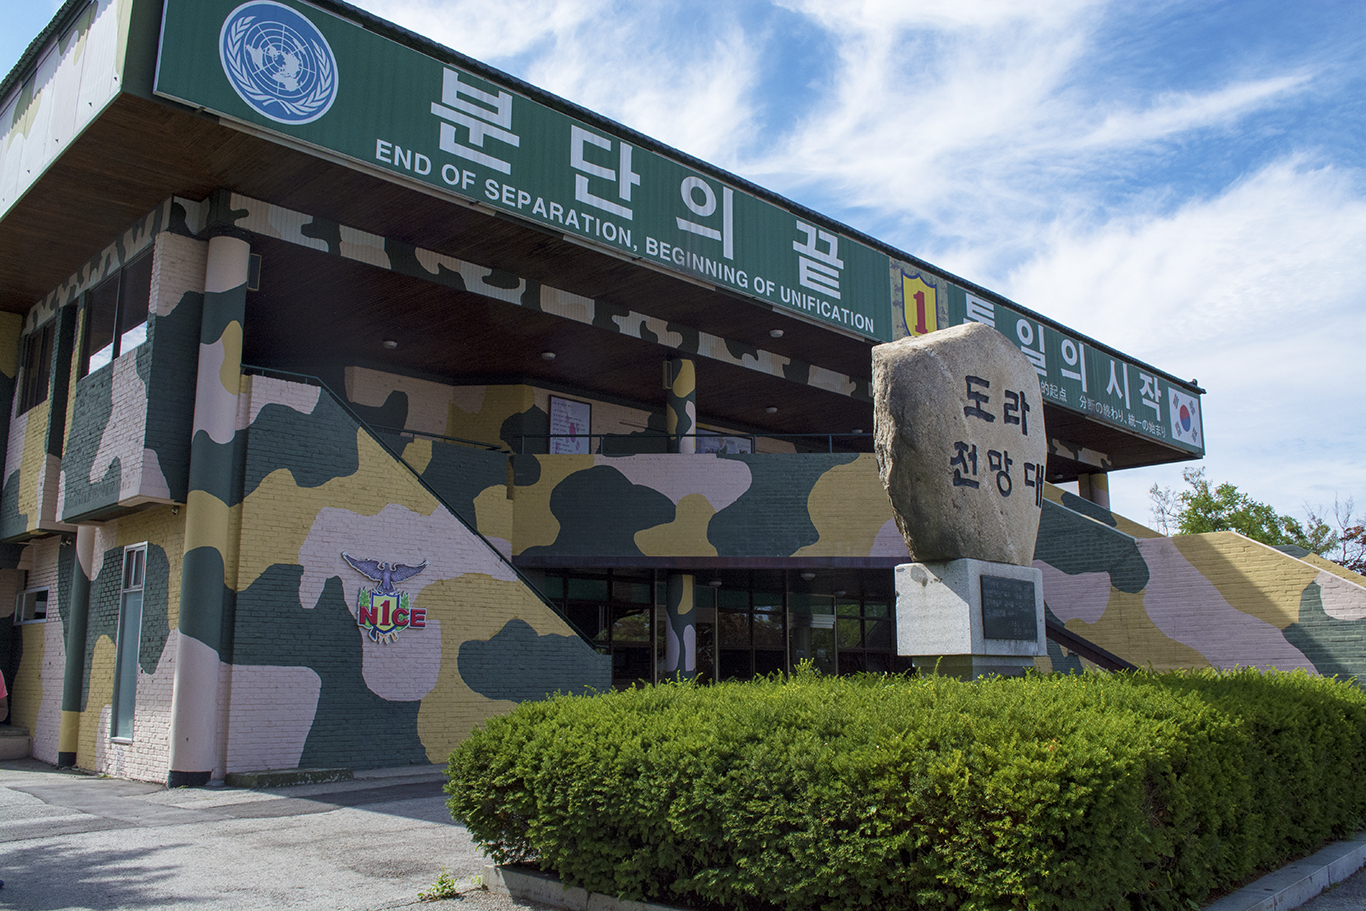 The Dora Observatory on the South Korean side of the Military Demarcation Line. The Dora Observatory is the closest South Korean military installation to the Military Demarcation Line within the DMZ (approx. 1 mile), and was closed to the public during military tensions in August between North and South Korea.(CHRISTOPHER CAMERON/THE STATESMAN)